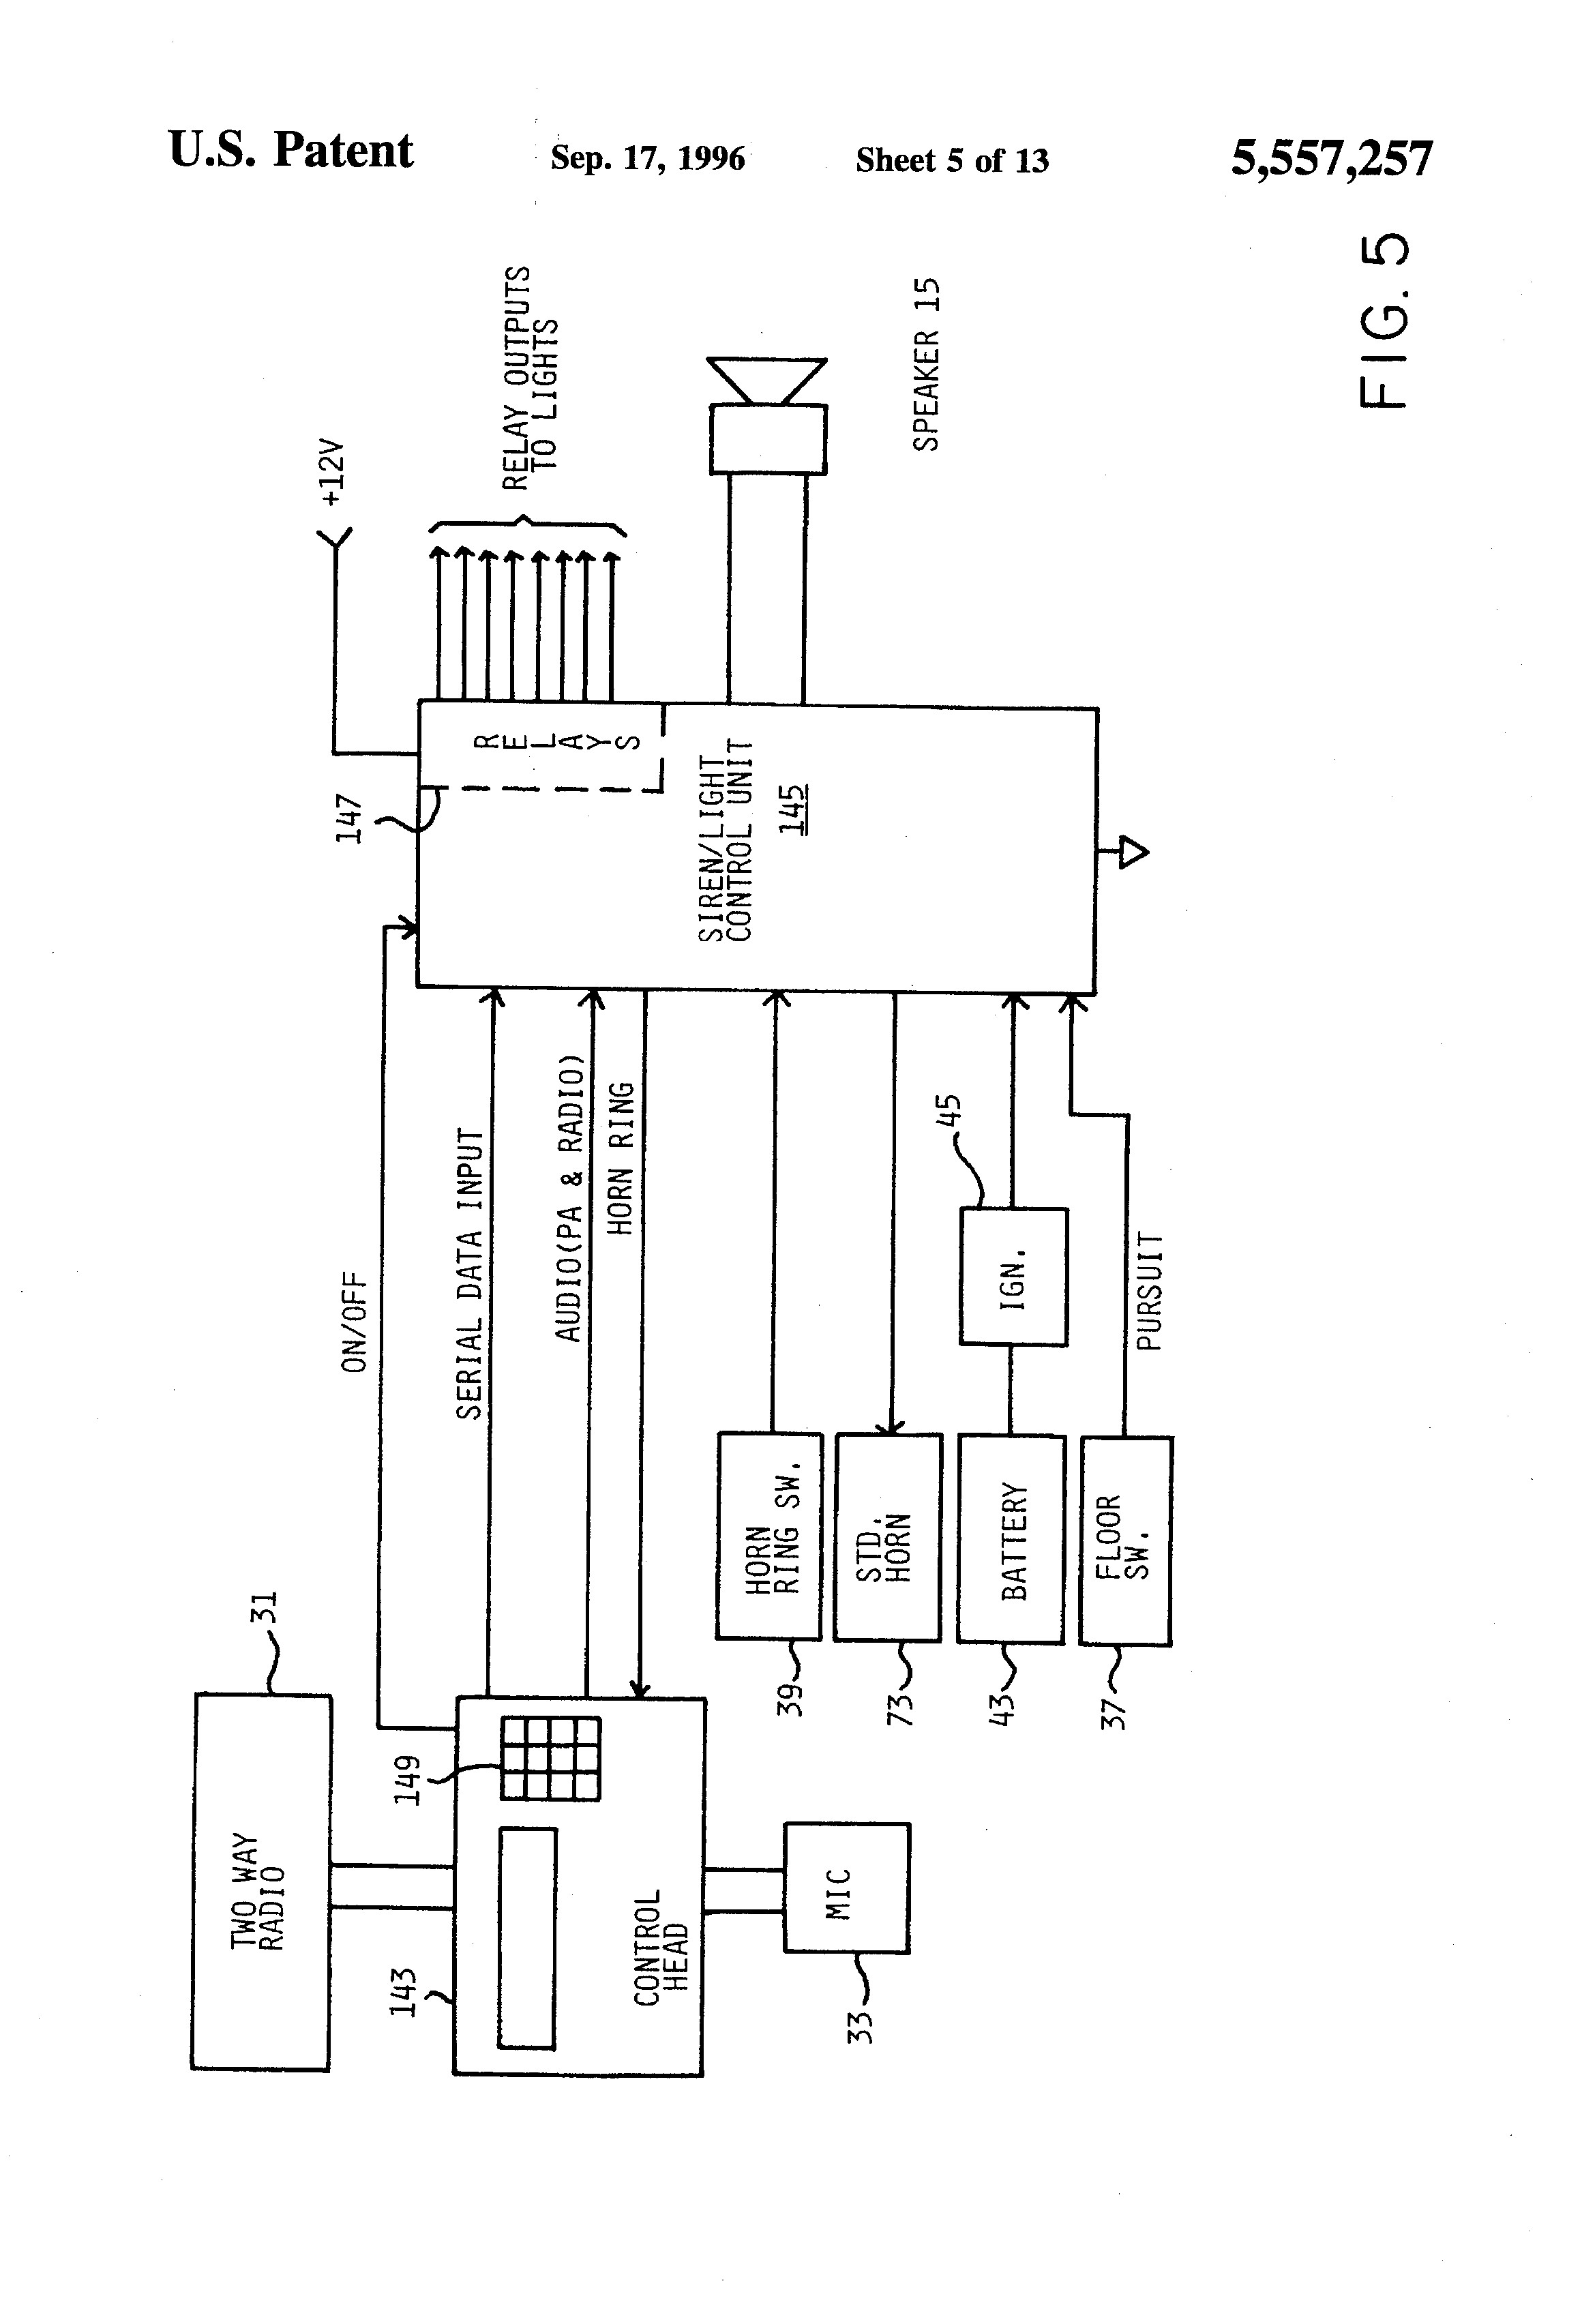 federal signal pa300 wiring diagram Collection-Category Wiring Diagram 114 Federal Signal Pa300 Wiring Diagram Sample 16-j